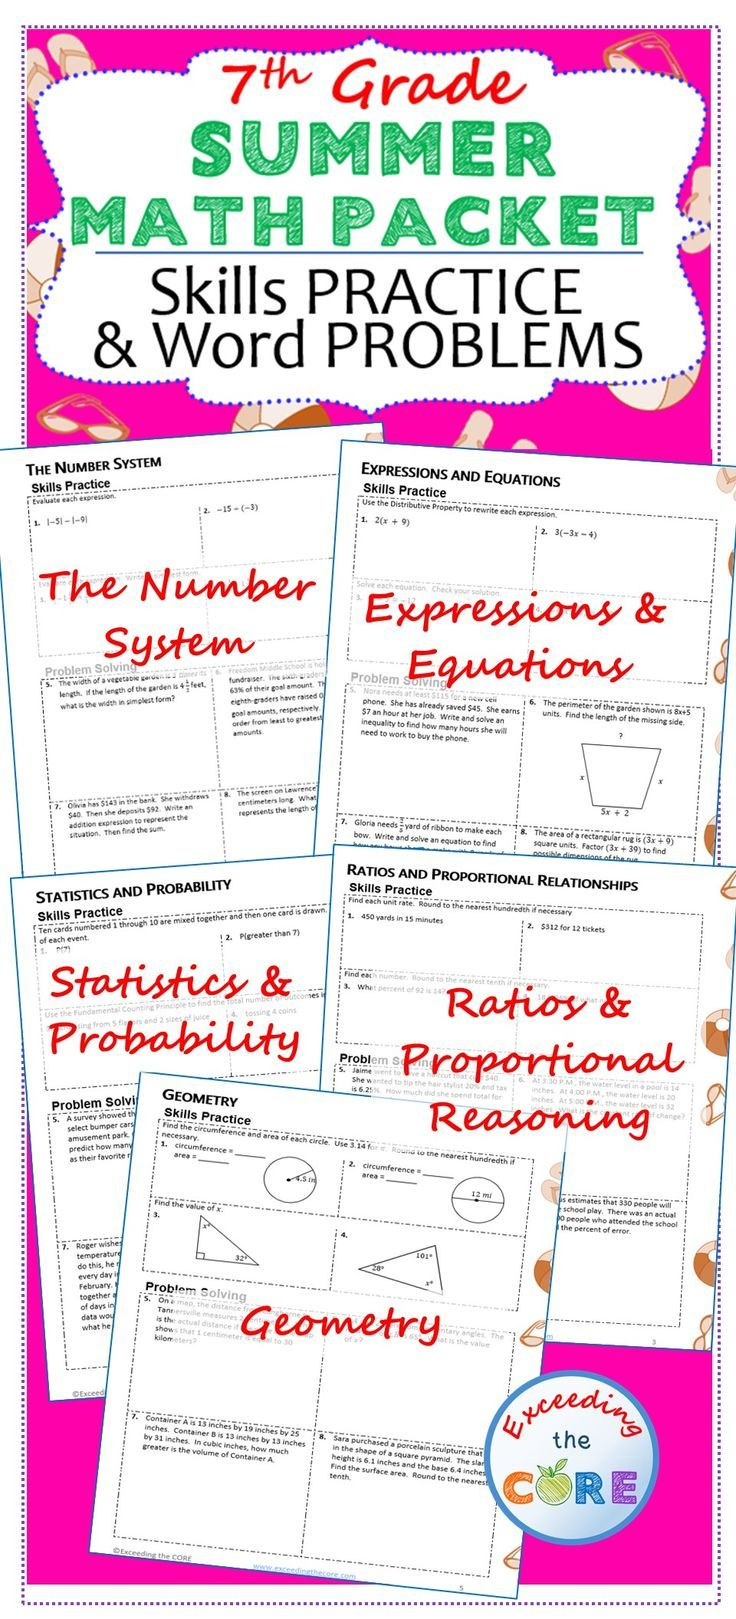 Best 25+ Proportions worksheet ideas on Pinterest | Ratio and ...